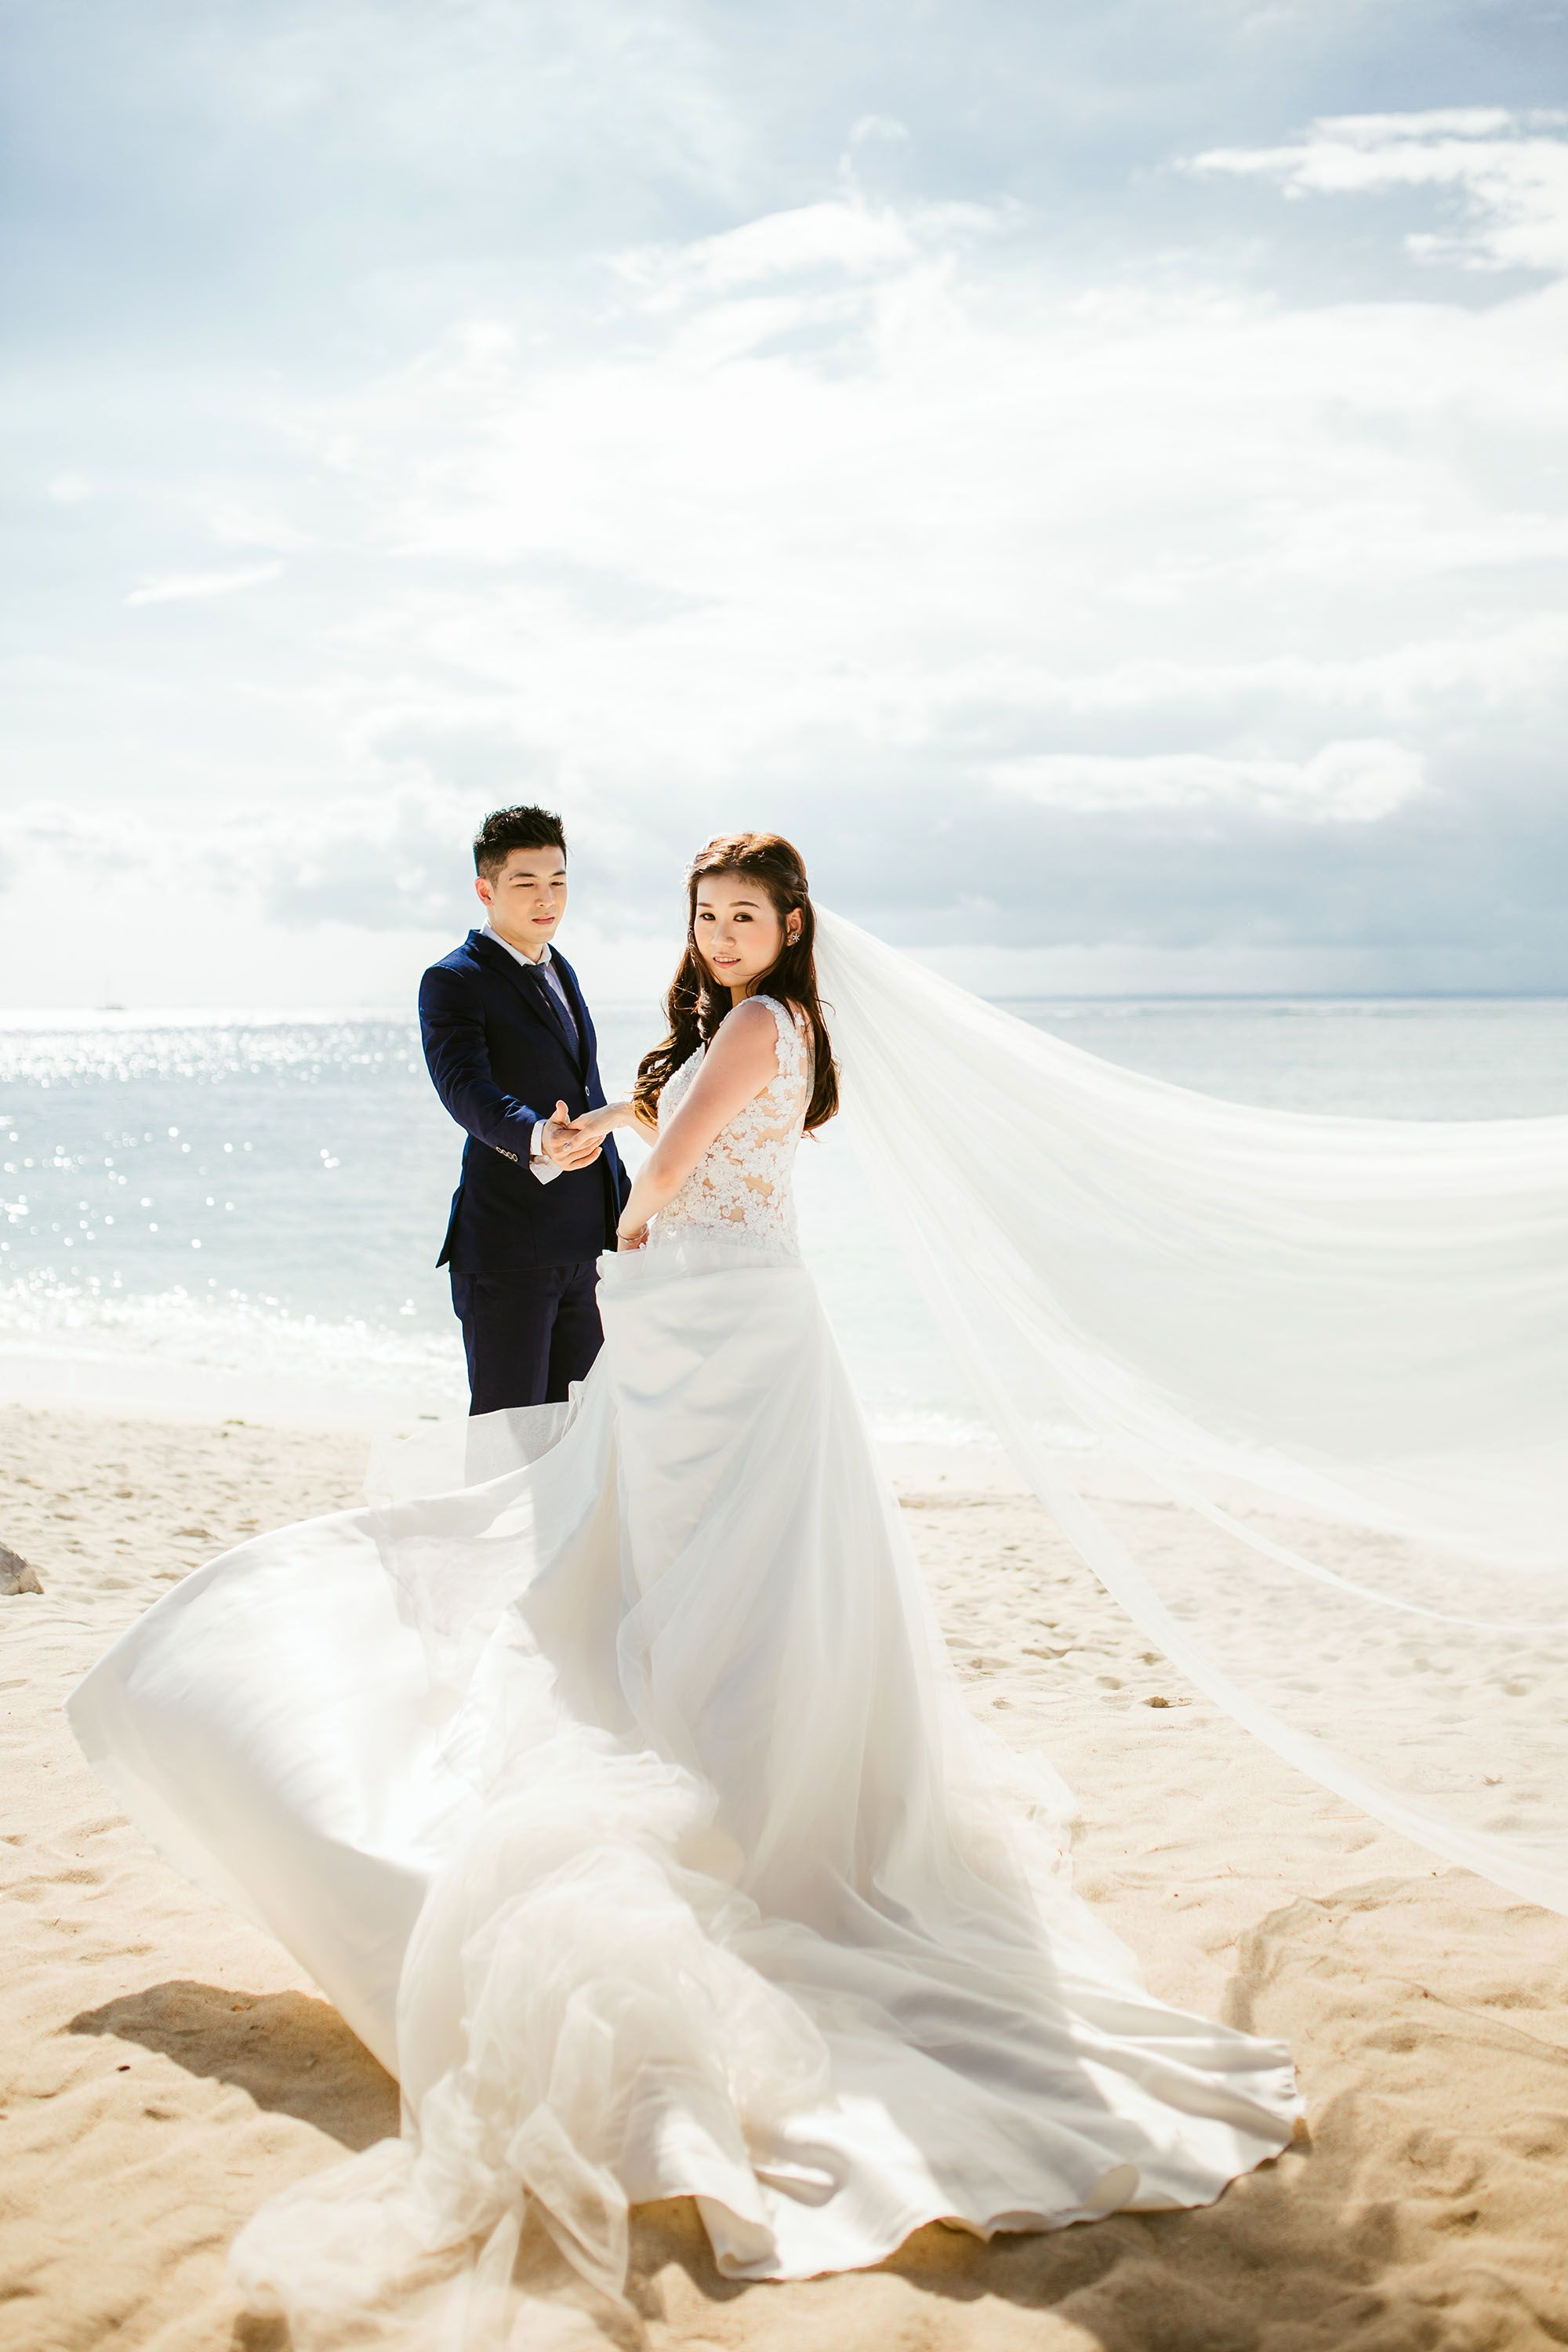 Taiwan Outdoor Pre Wedding Photoshoot At The Forest And Beach